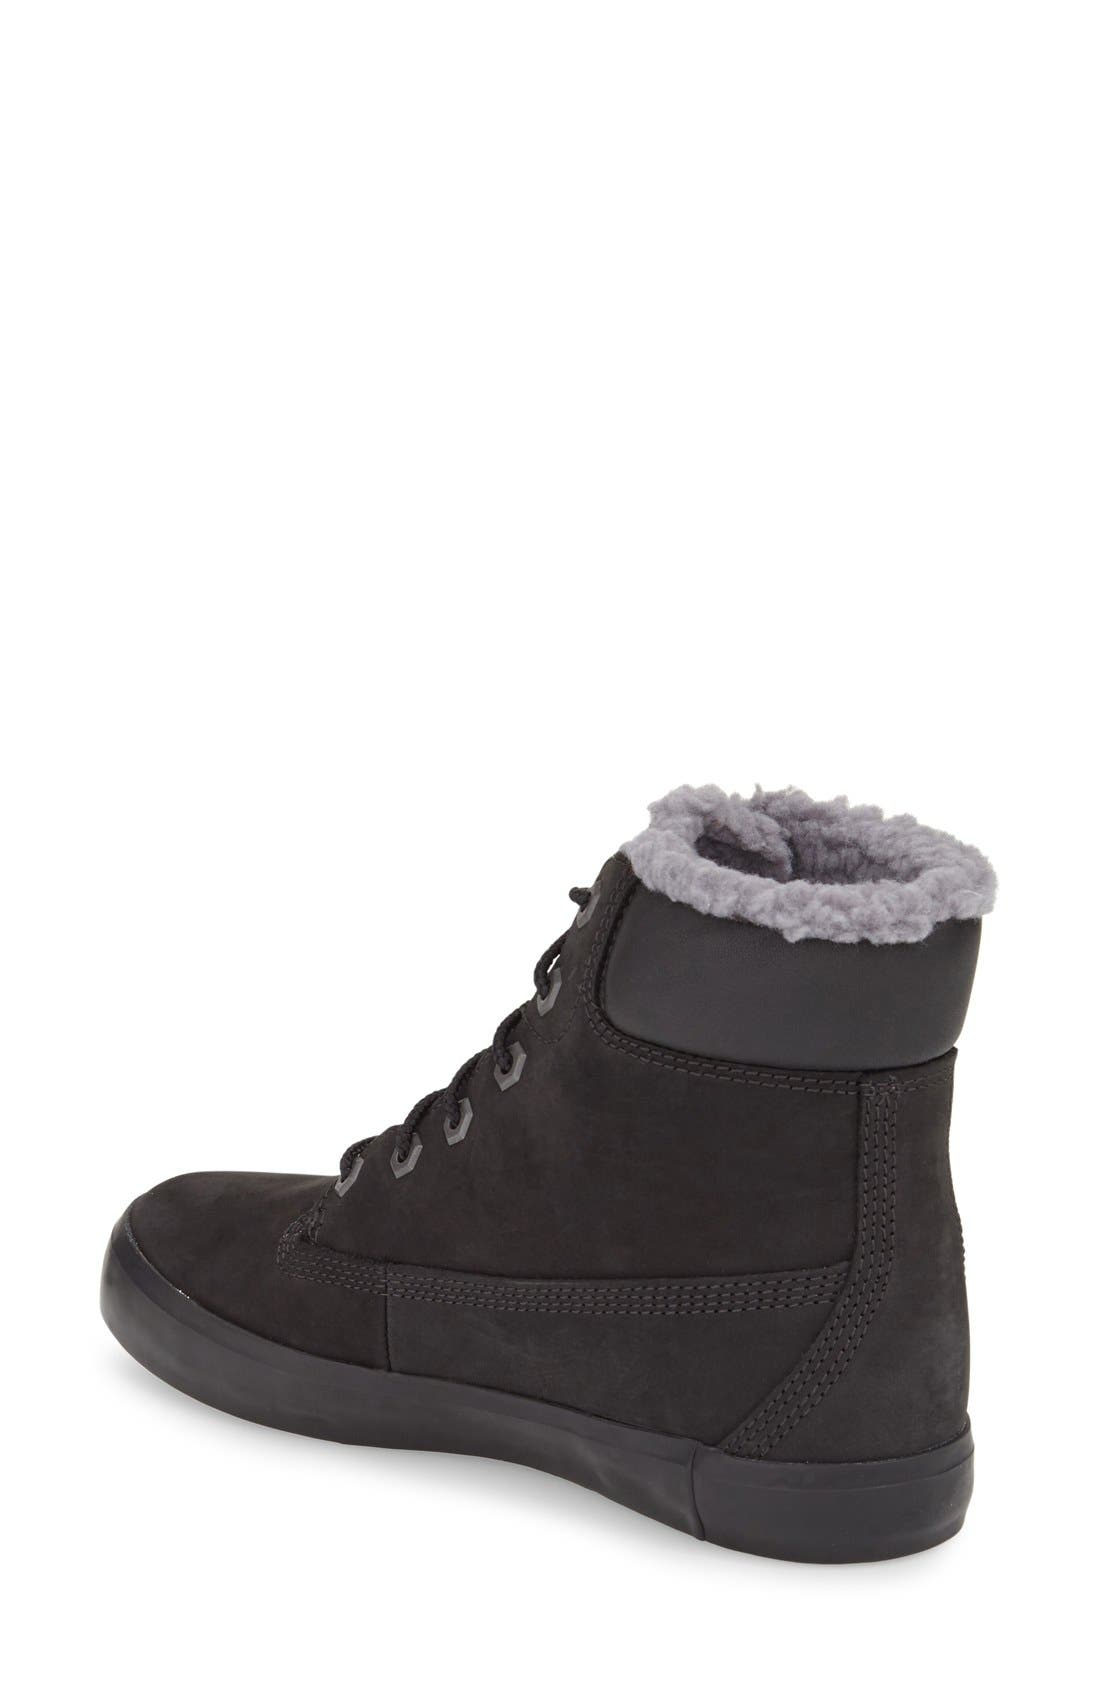 Alternate Image 2  - Timberland Flannery Hidden Wedge Boot with Faux Fur Lining (Women)